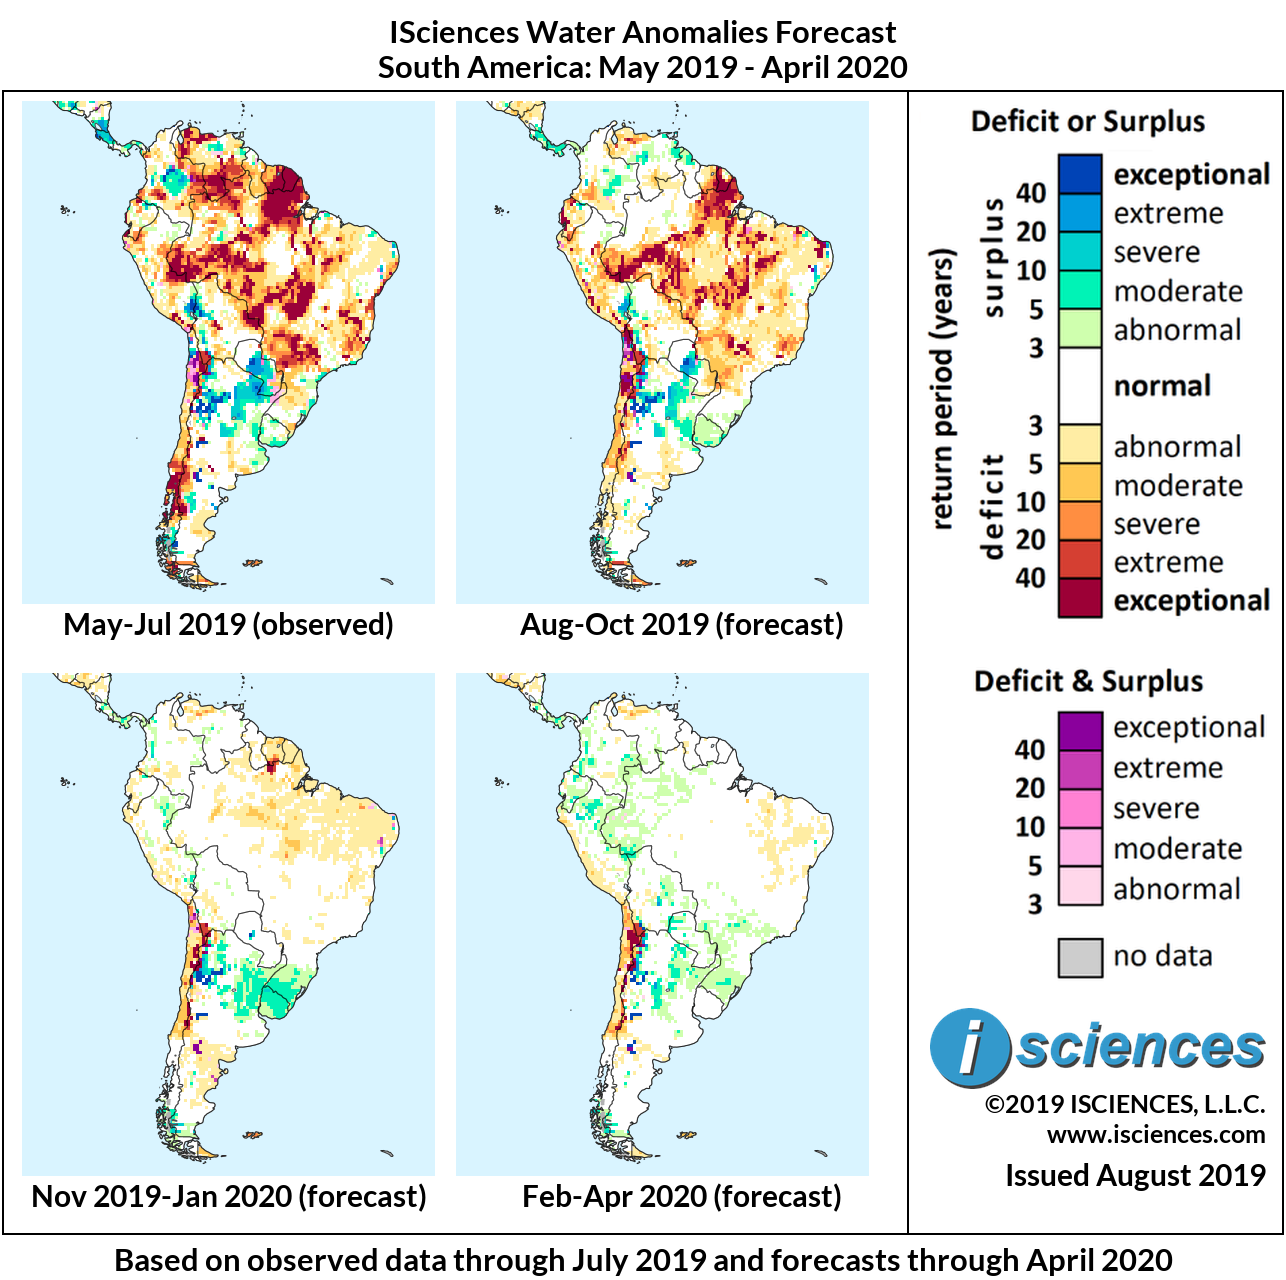 ISciences_South_America_Composite_Adjusted_201905-202004_3mo_panel.png